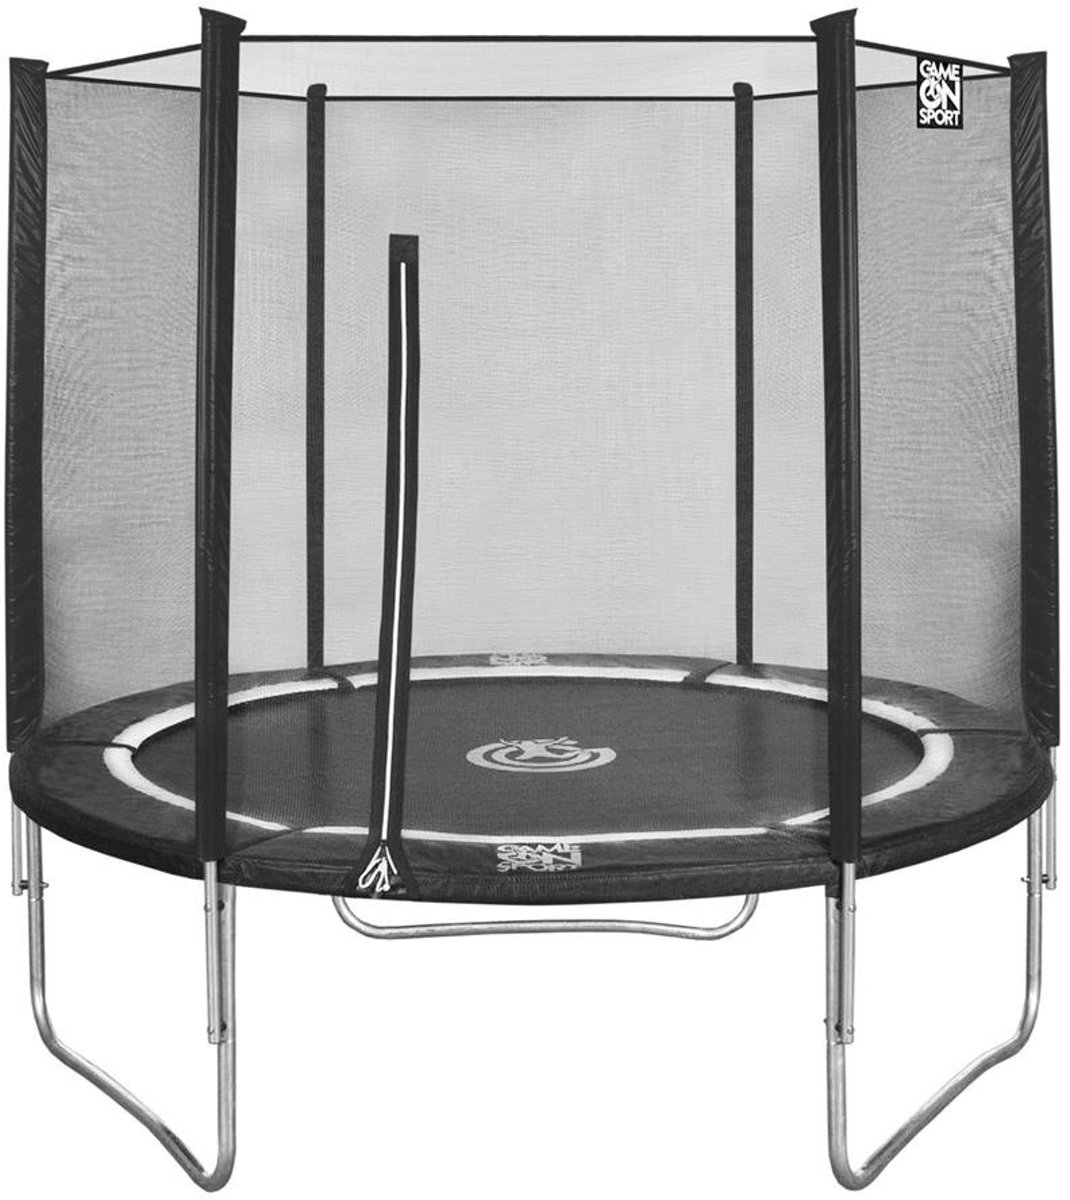 Game On Sport Trampoline Jumpline 244 zwart